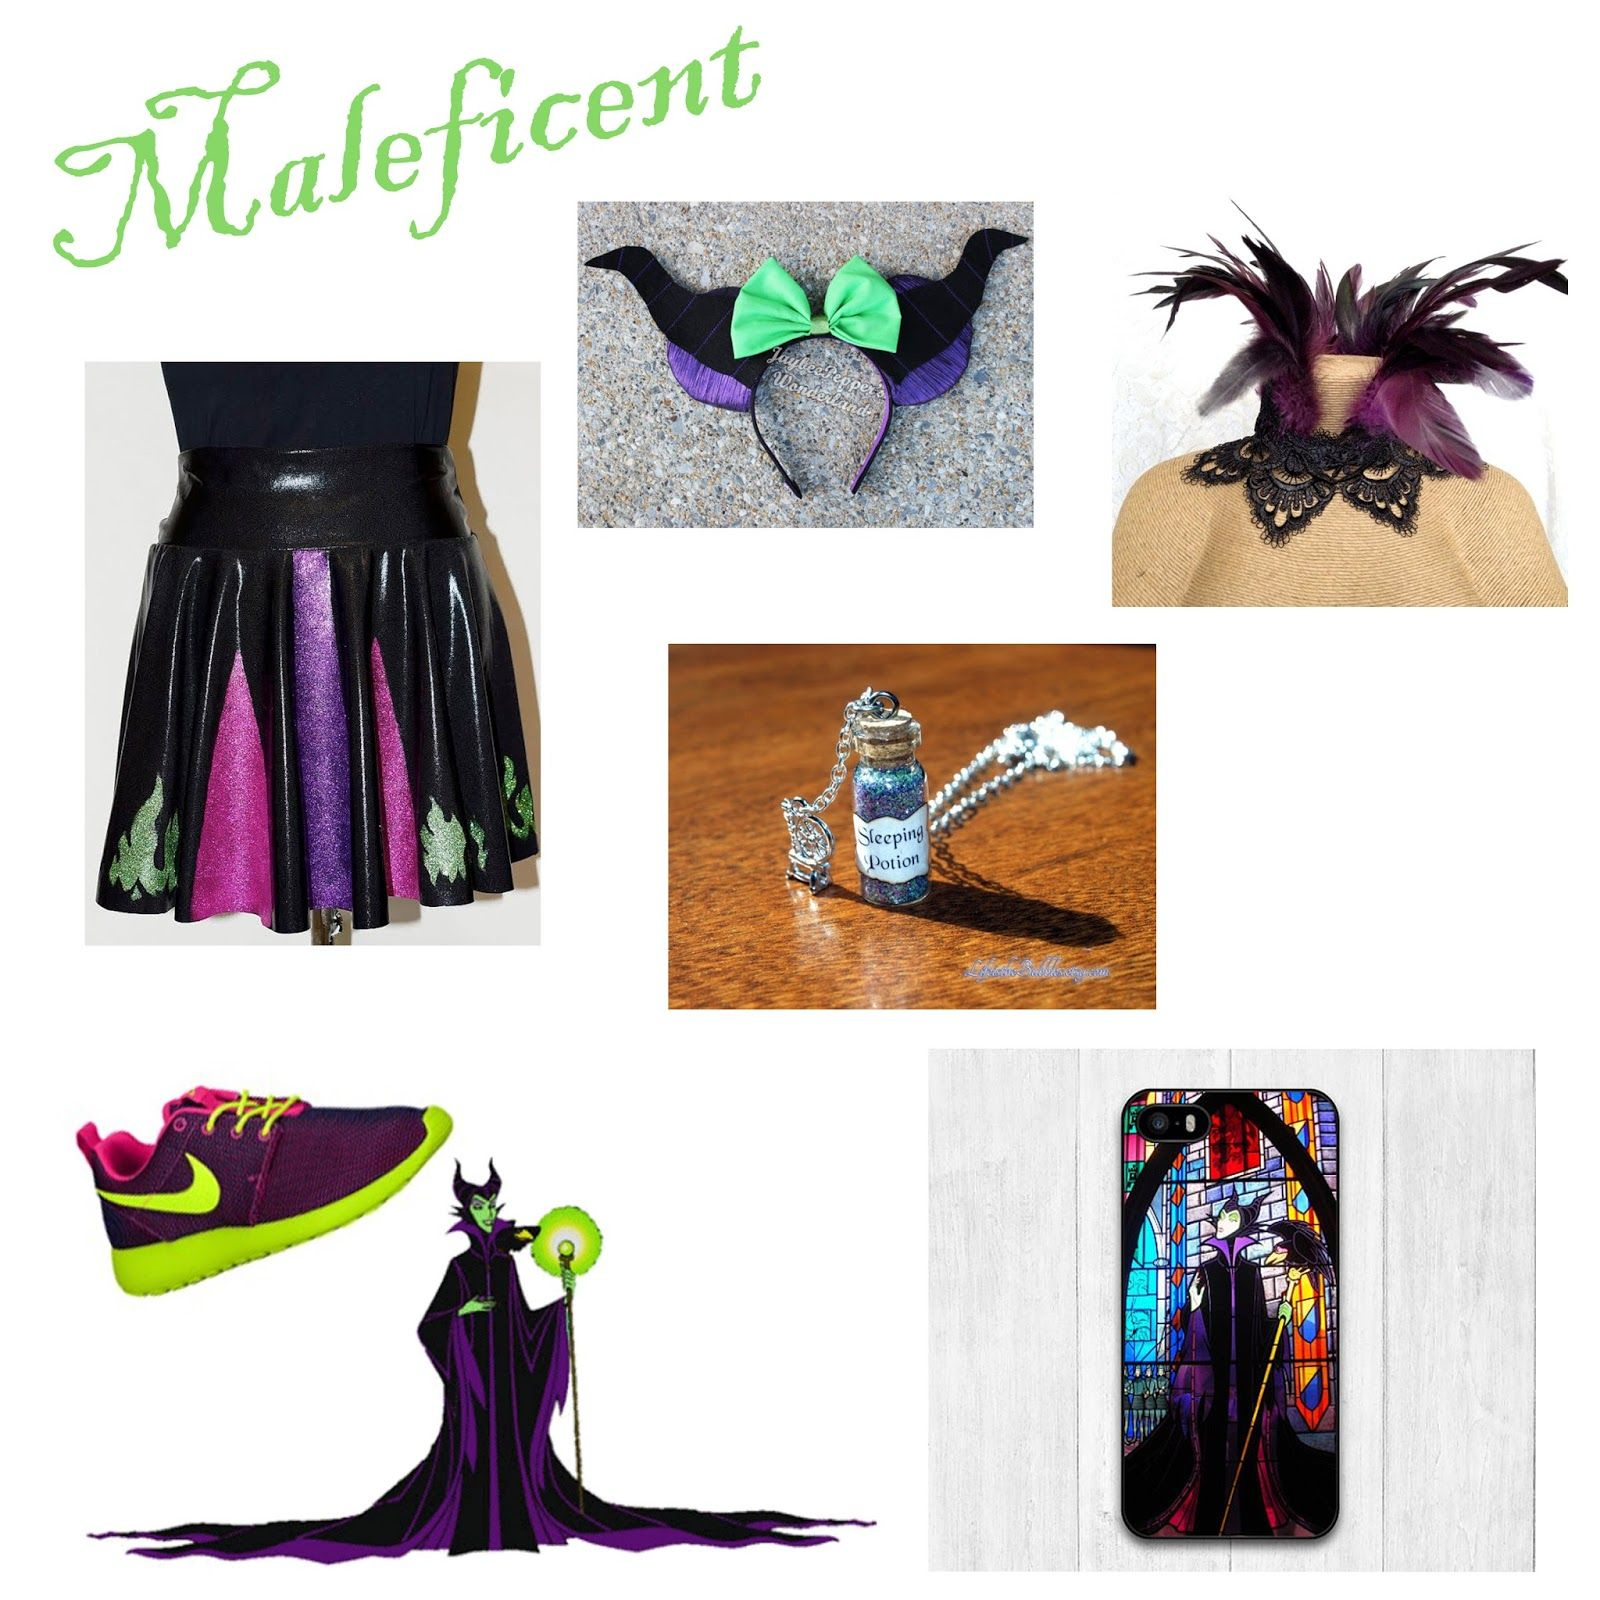 Maleficent Costume For Rundisney Disney